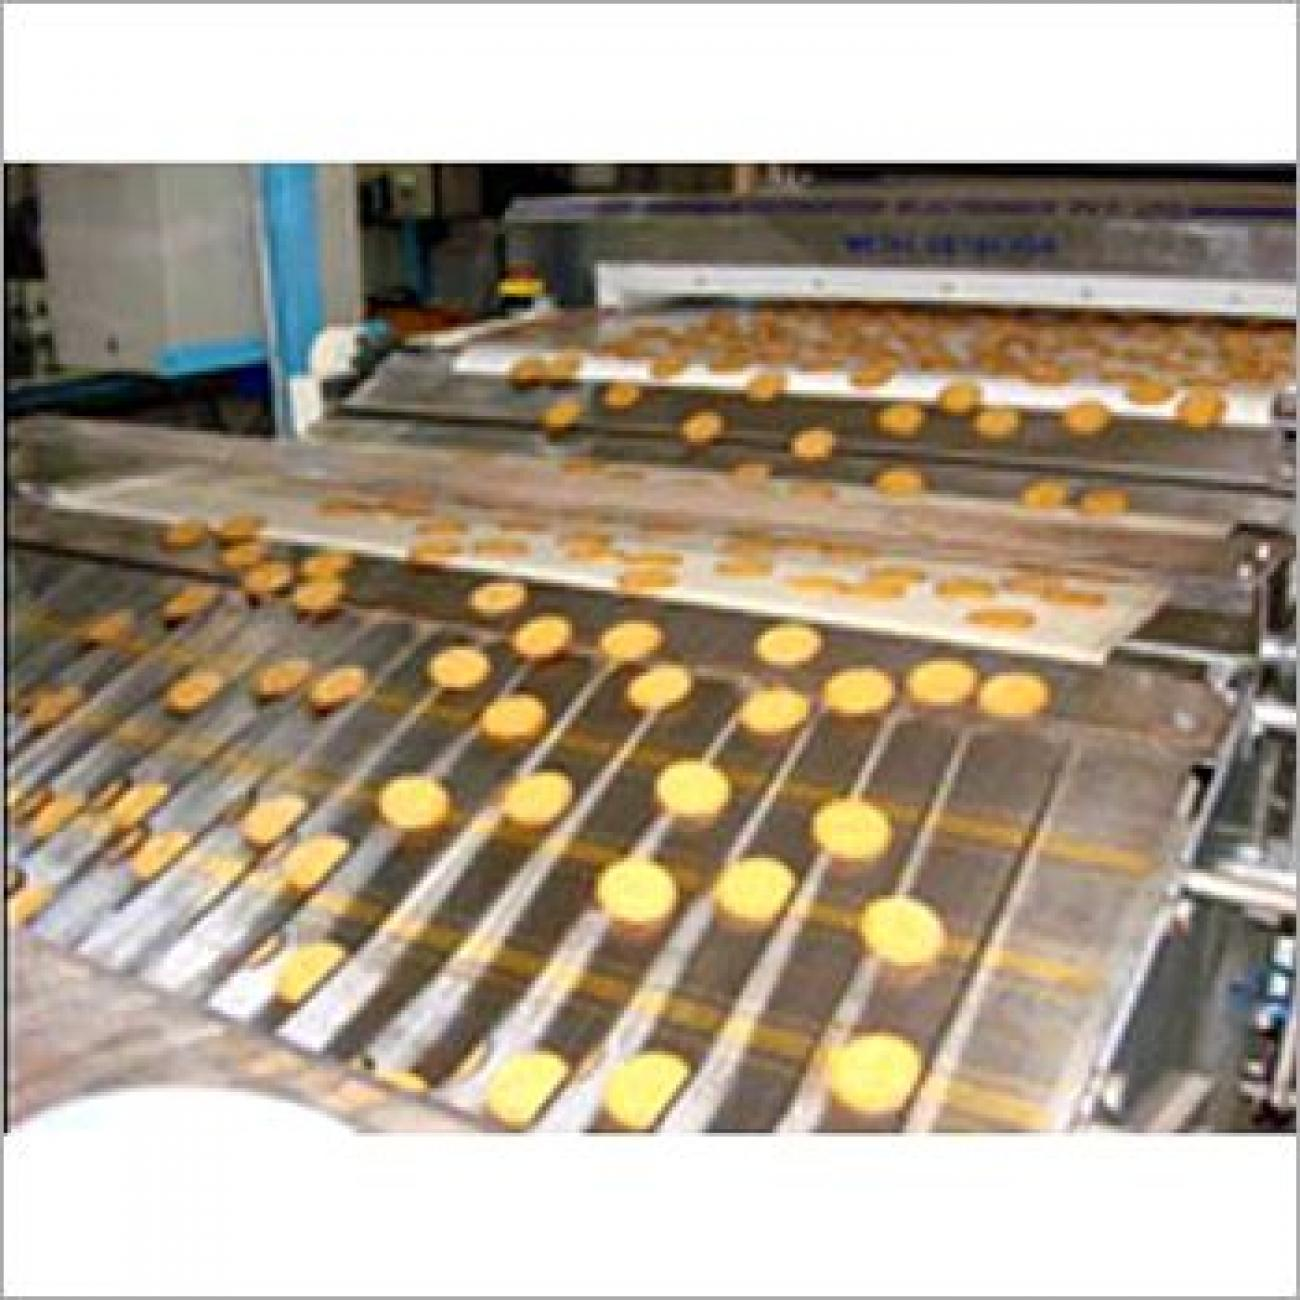 Rusk Making Oven